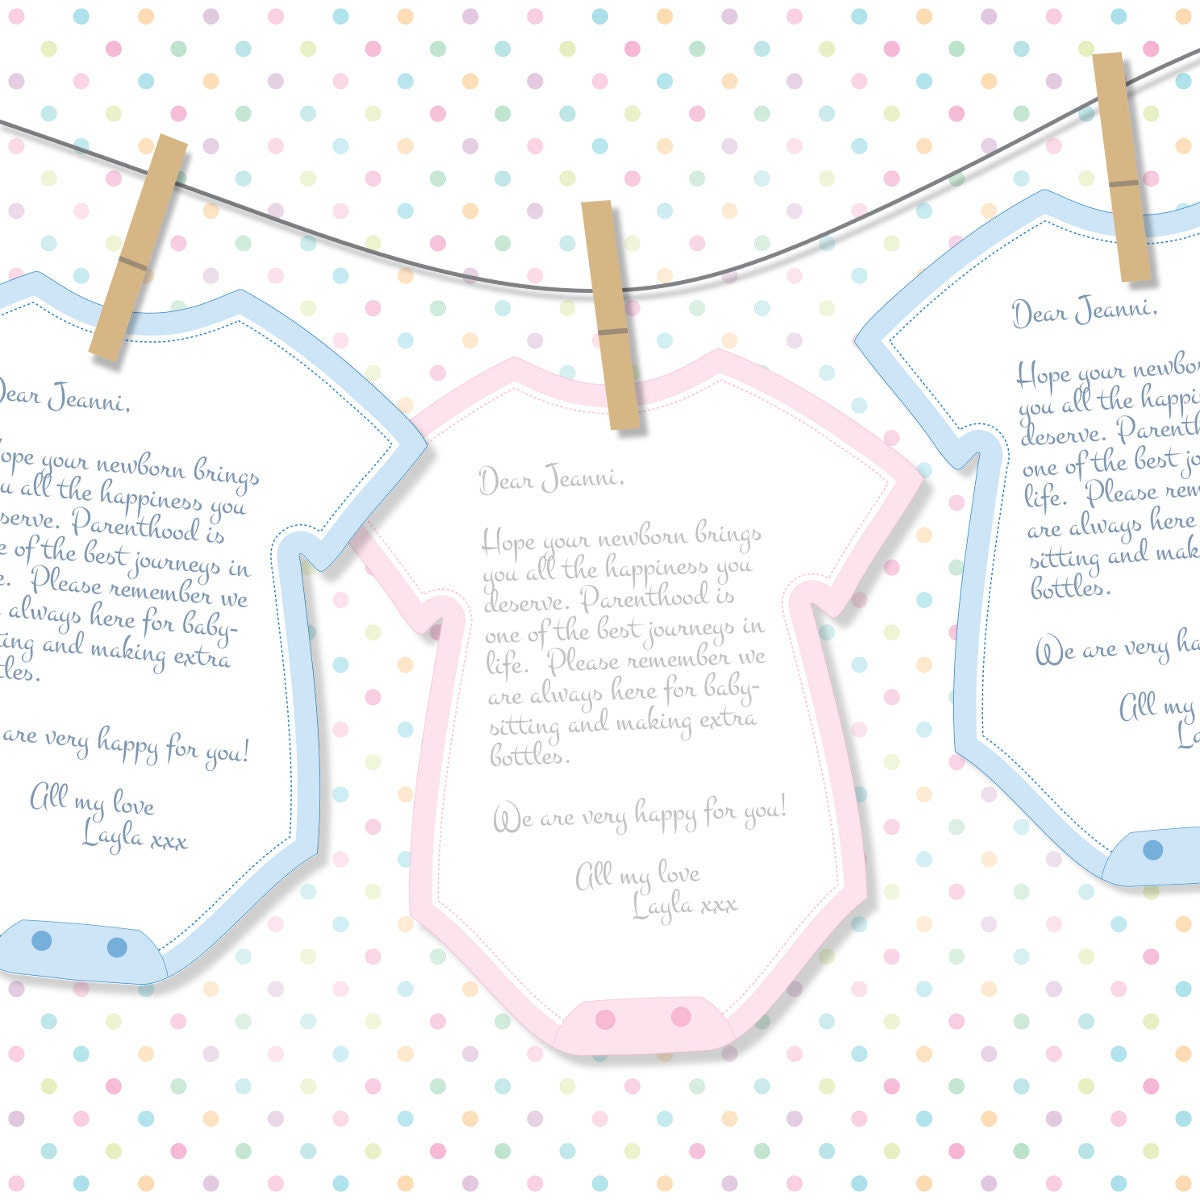 Baby shower advice cards decoration printable cutout for Baby shower decoration cutouts